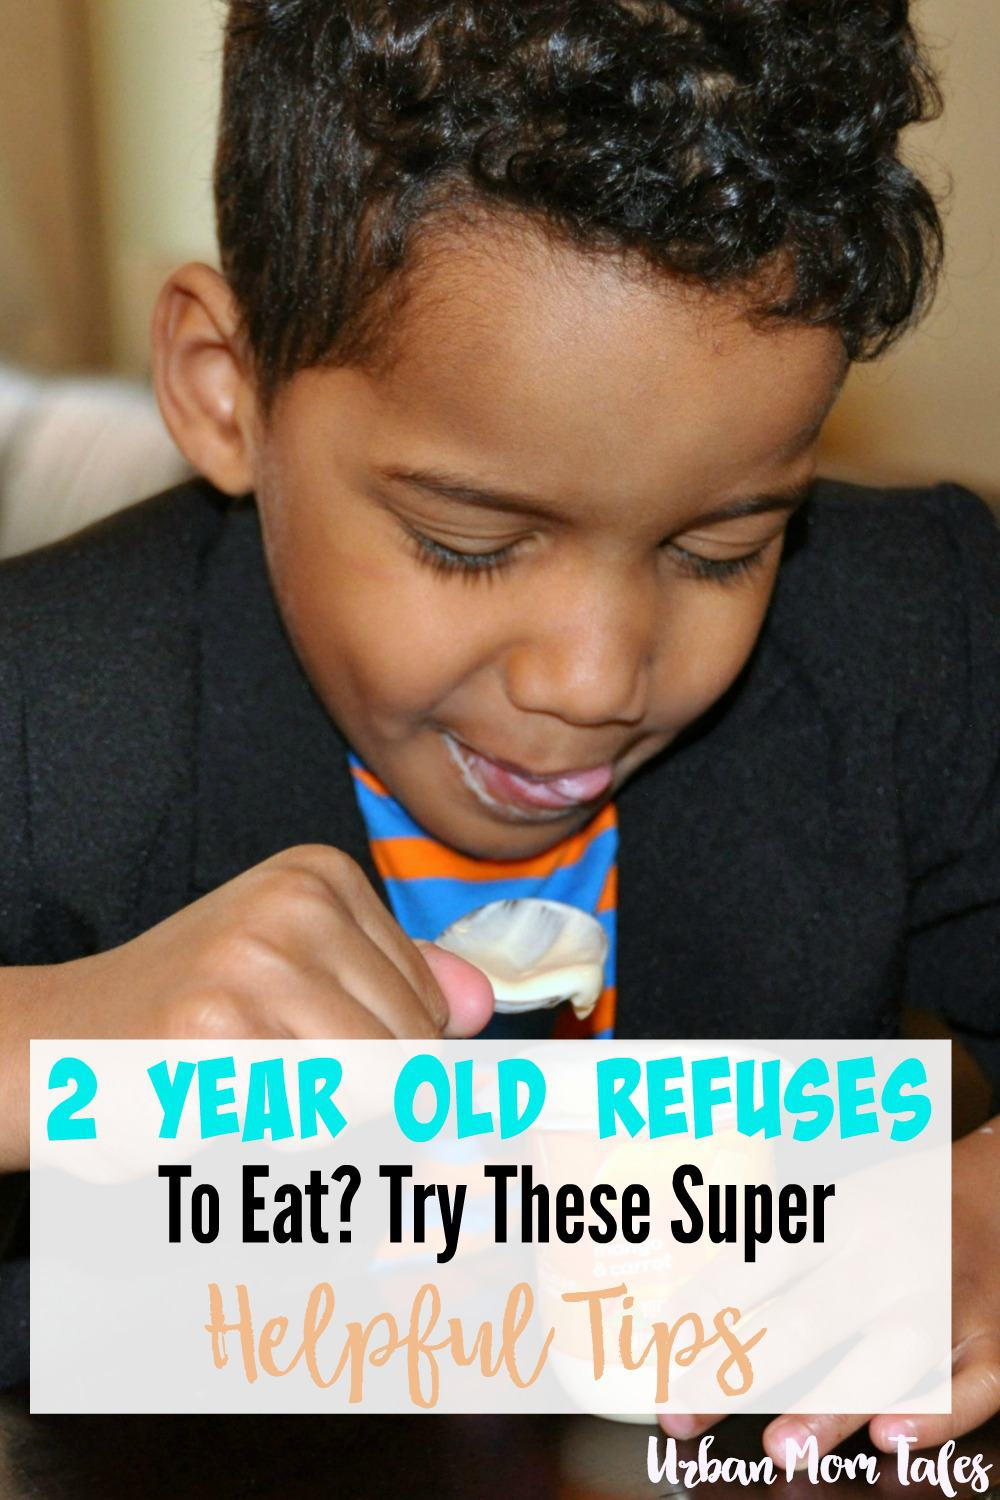 2 year old refuses to eat? Try these Super Helpful Tips